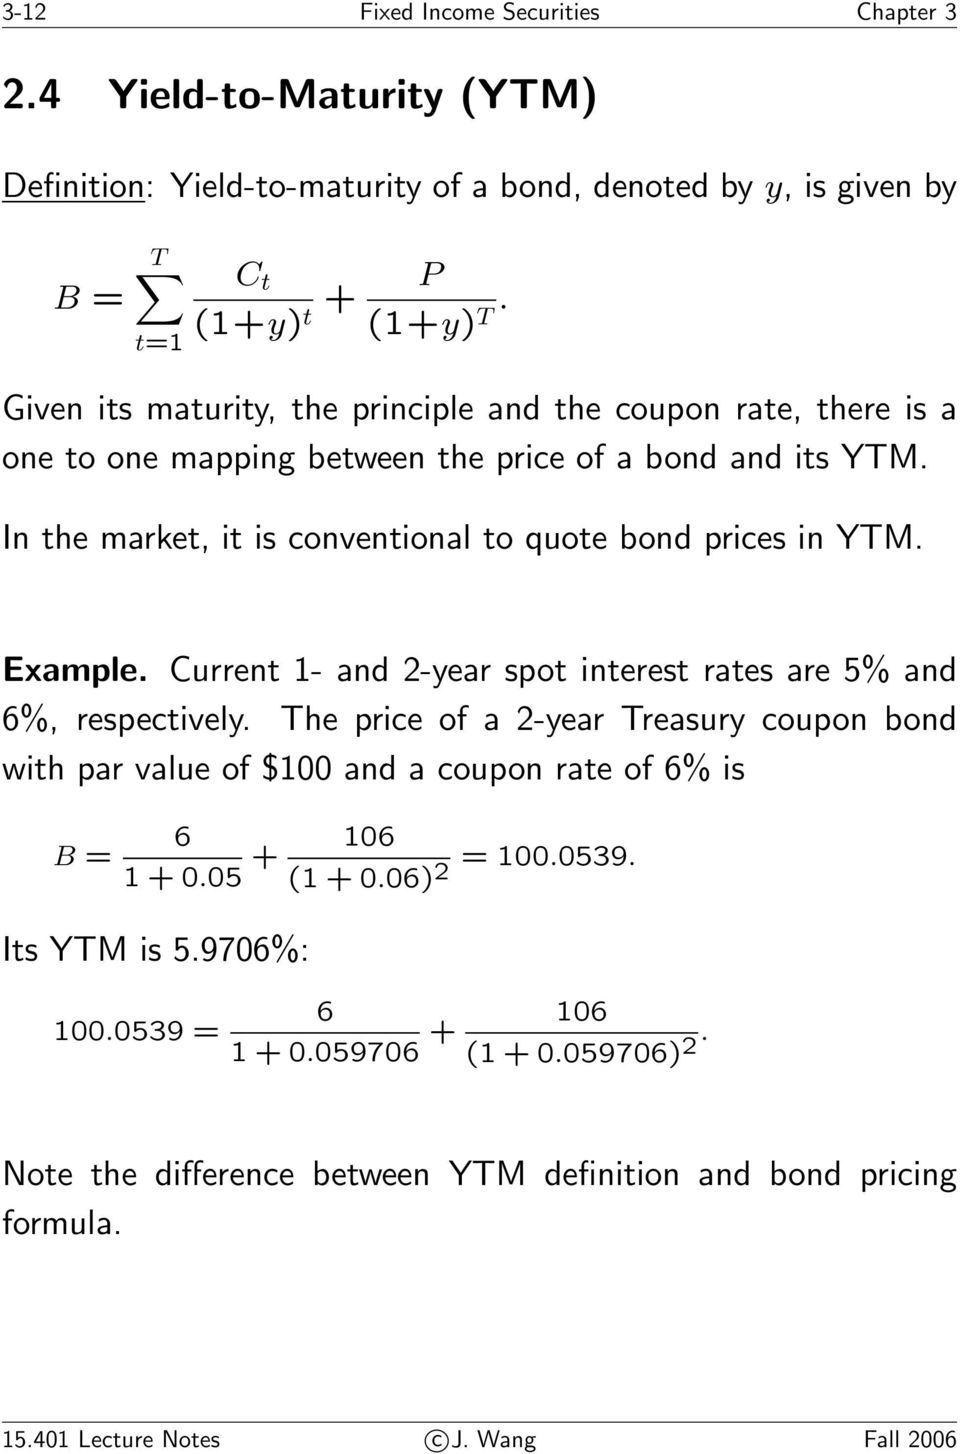 Example. Current 1- and 2-year spot interest rates are 5% and 6%, respectively. The price of a 2-year Treasury coupon bond with par value of $100 and a coupon rate of 6% is B = 6 1+0.